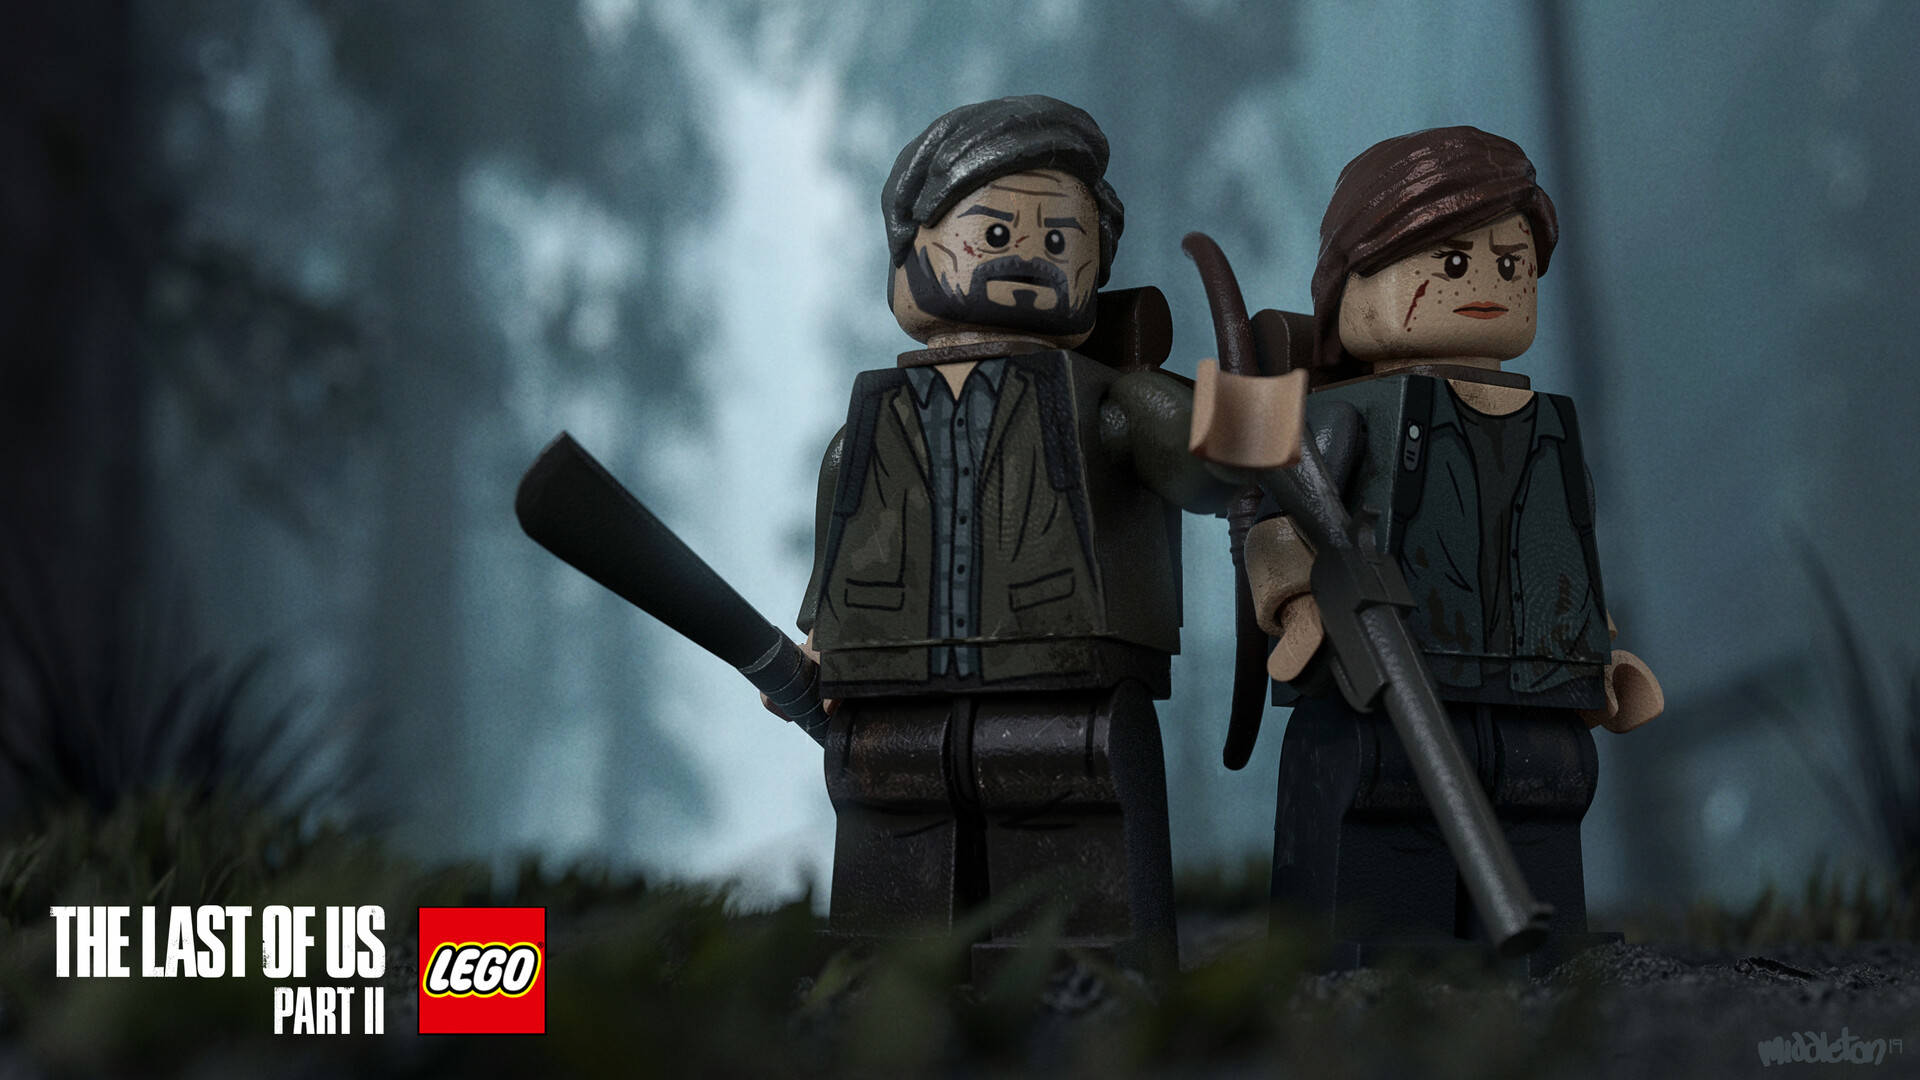 The last of us 2 lego